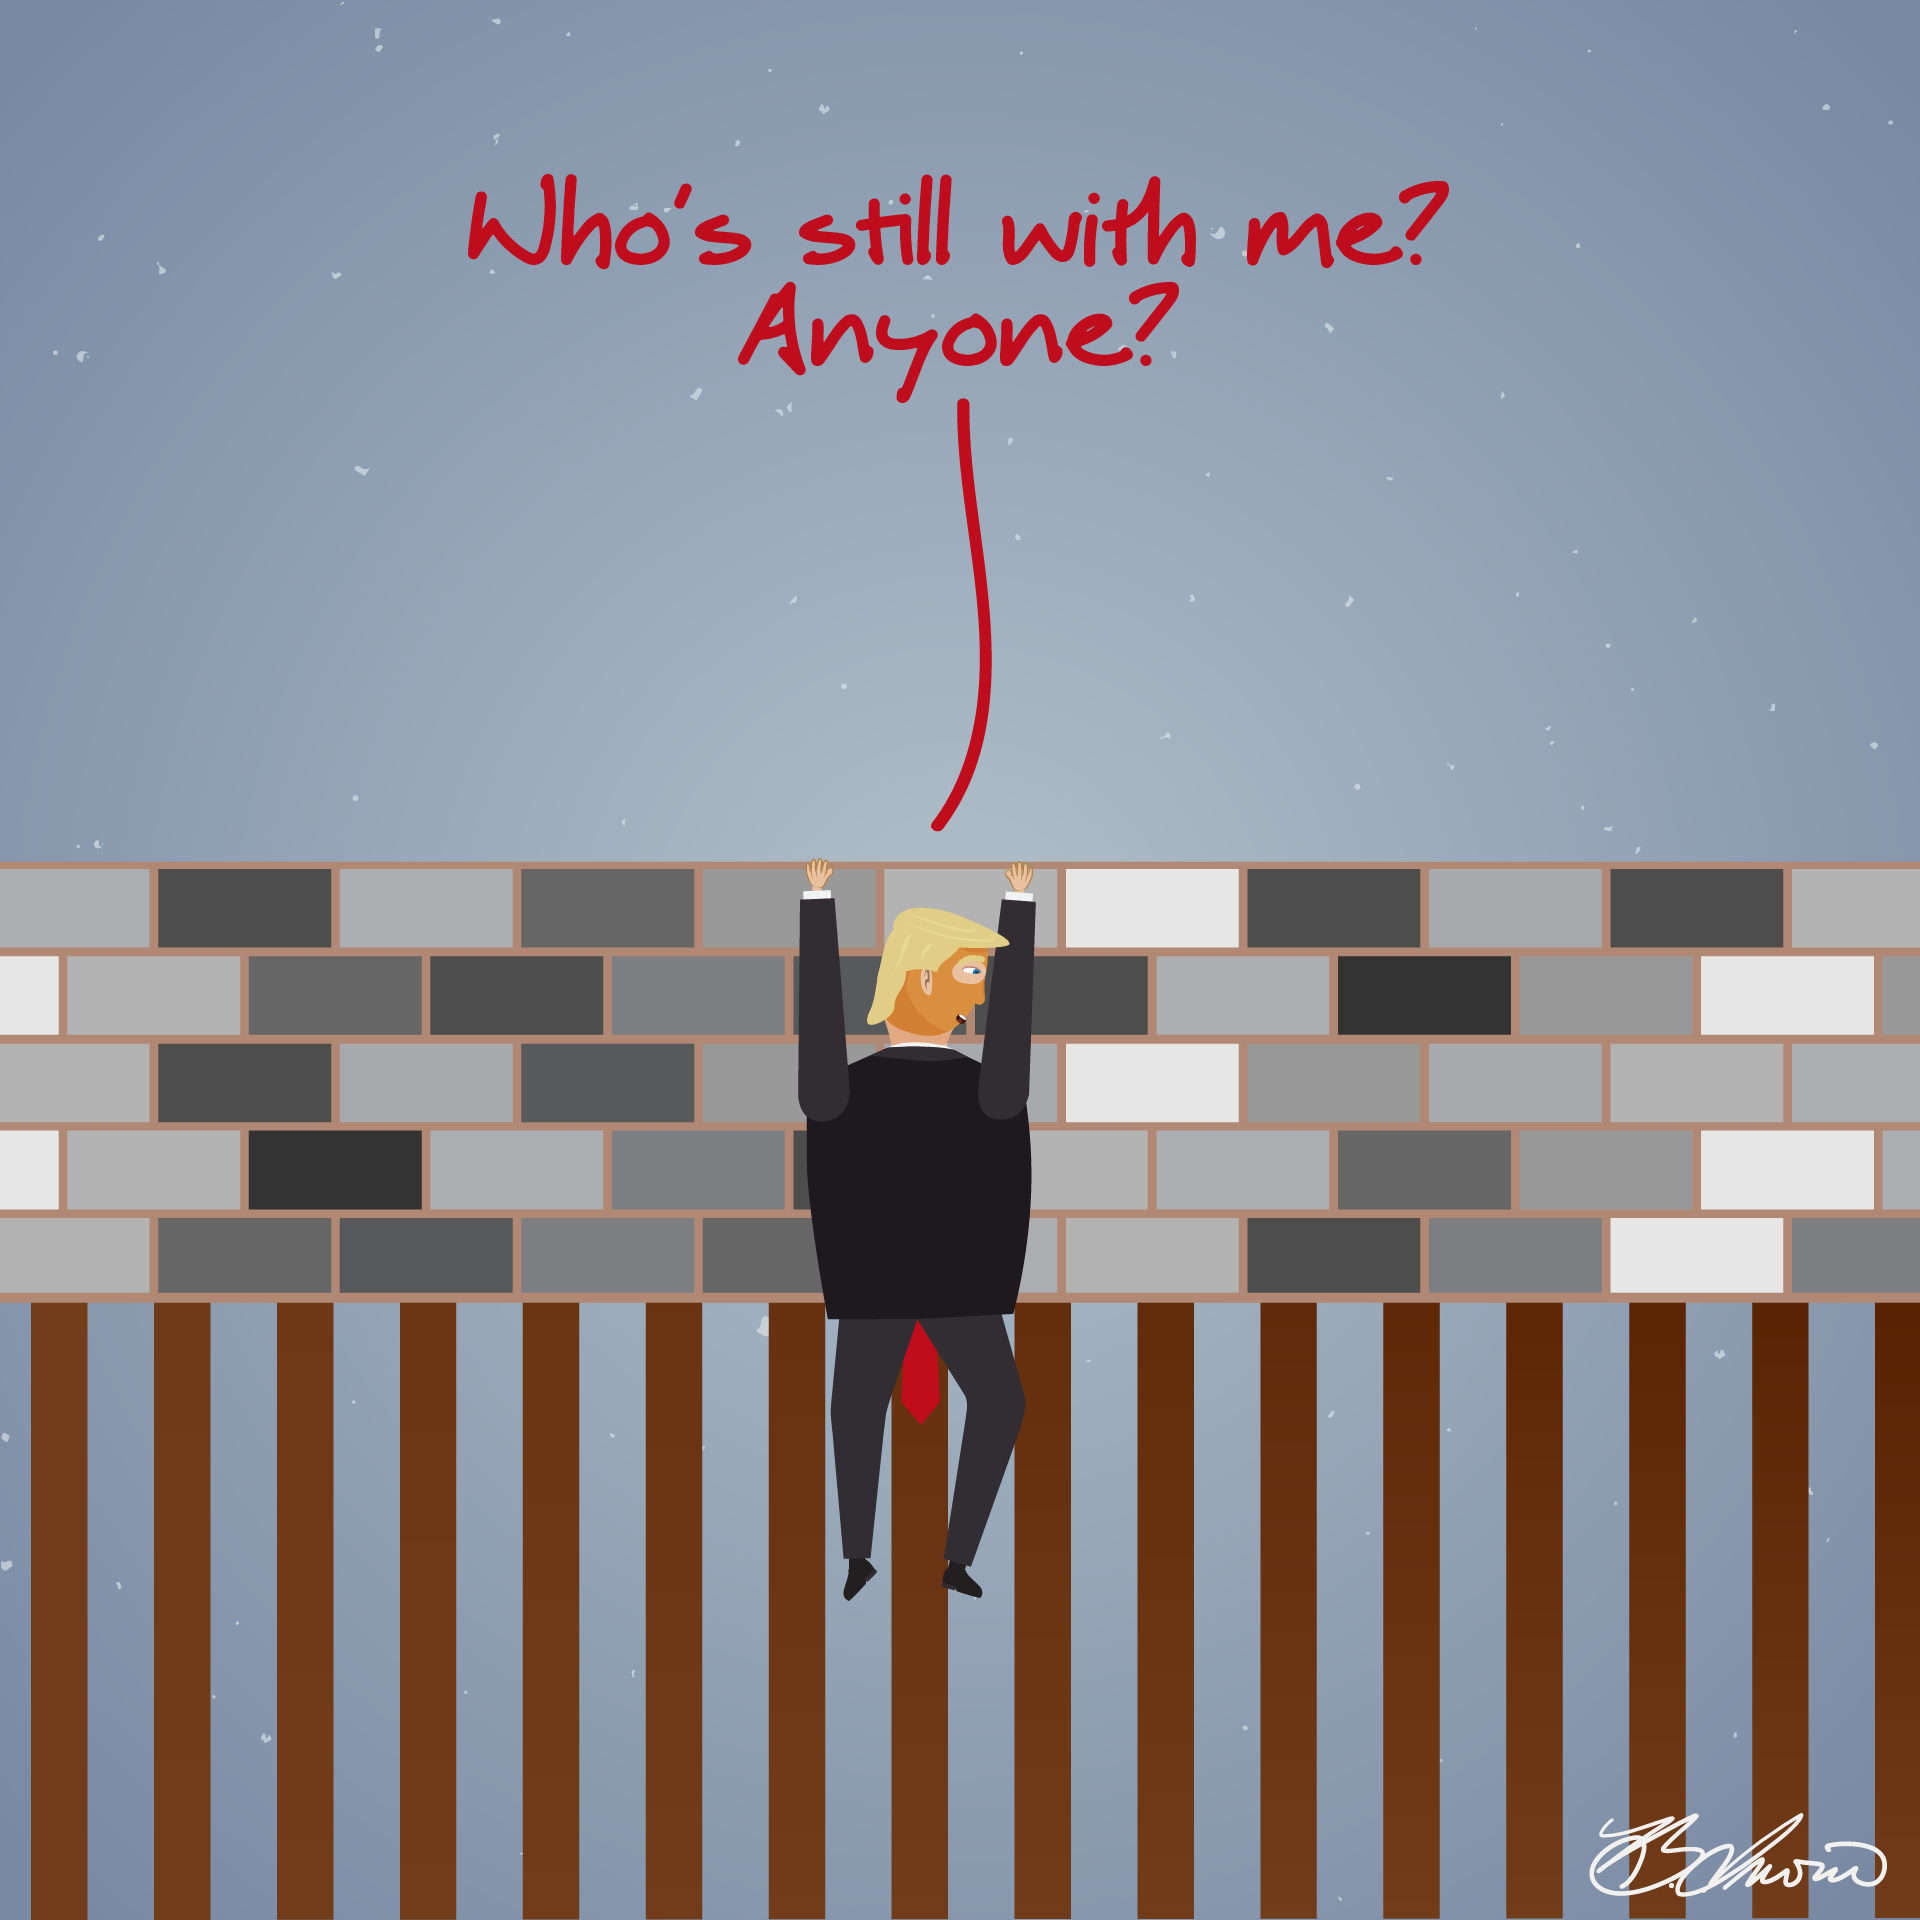 2019.02.11_Trump Clinging To Wall_Instagram.png